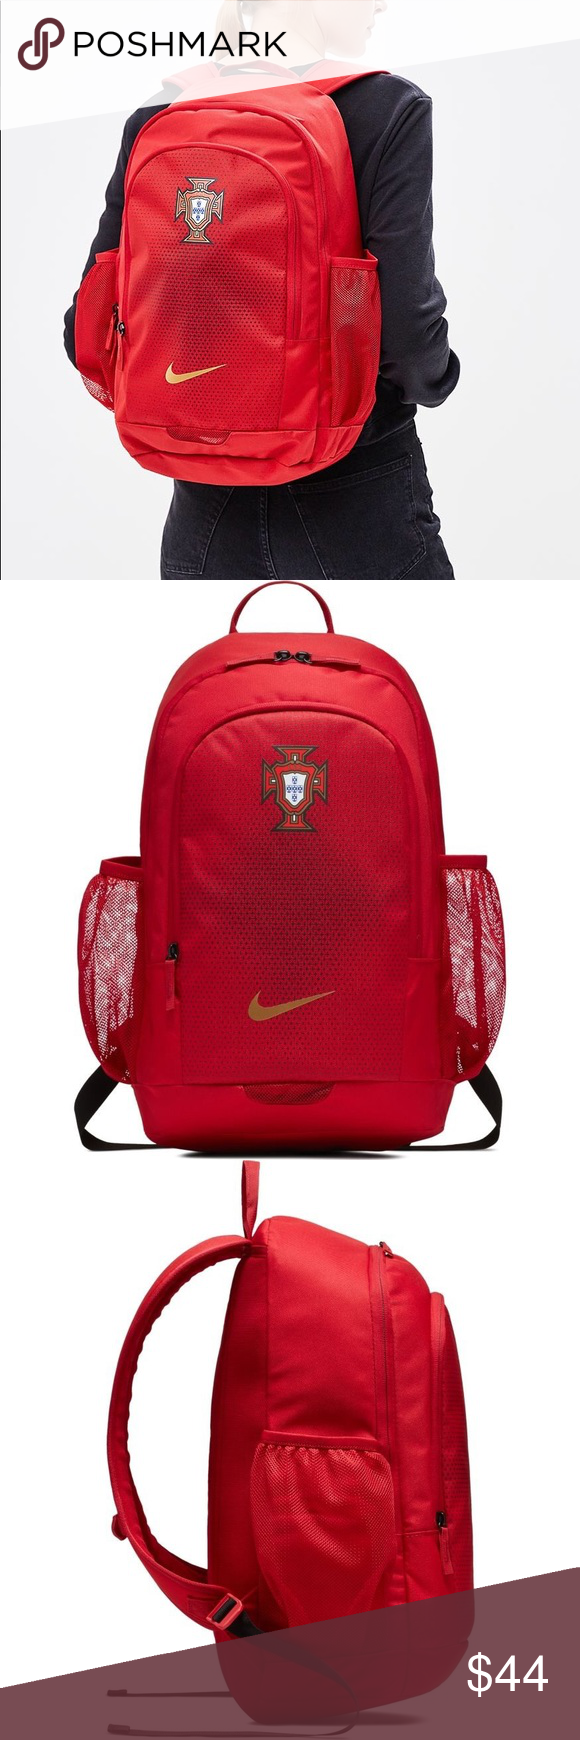 e24a1aa4682e Nike 2018-2019 Portugal Stadium Backpack 100% Authentic! Brand New With  Tags!